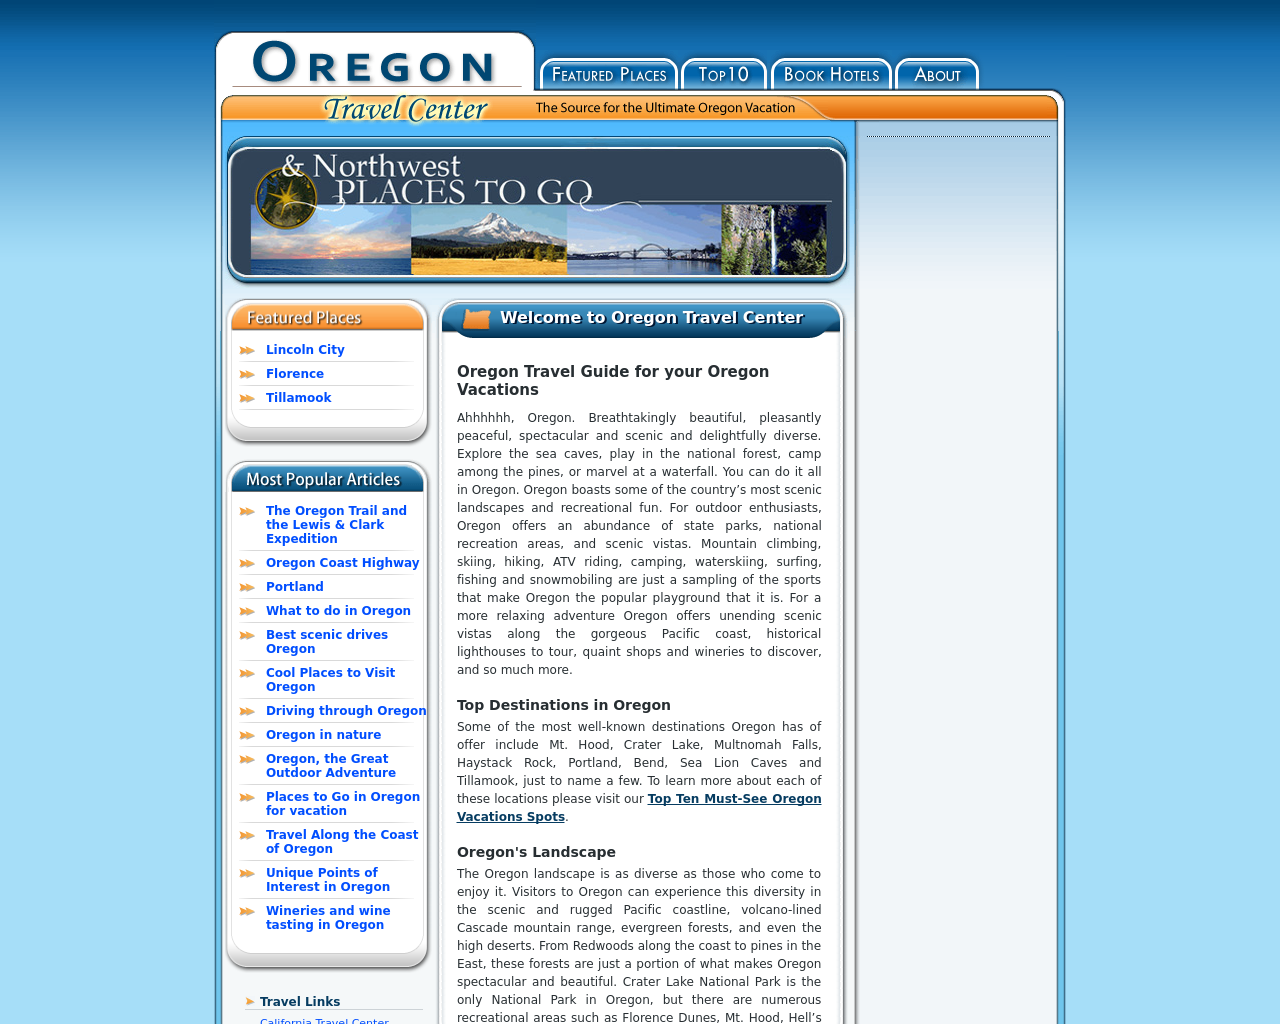 Oregon-Travel-Center-Advertising-Reviews-Pricing